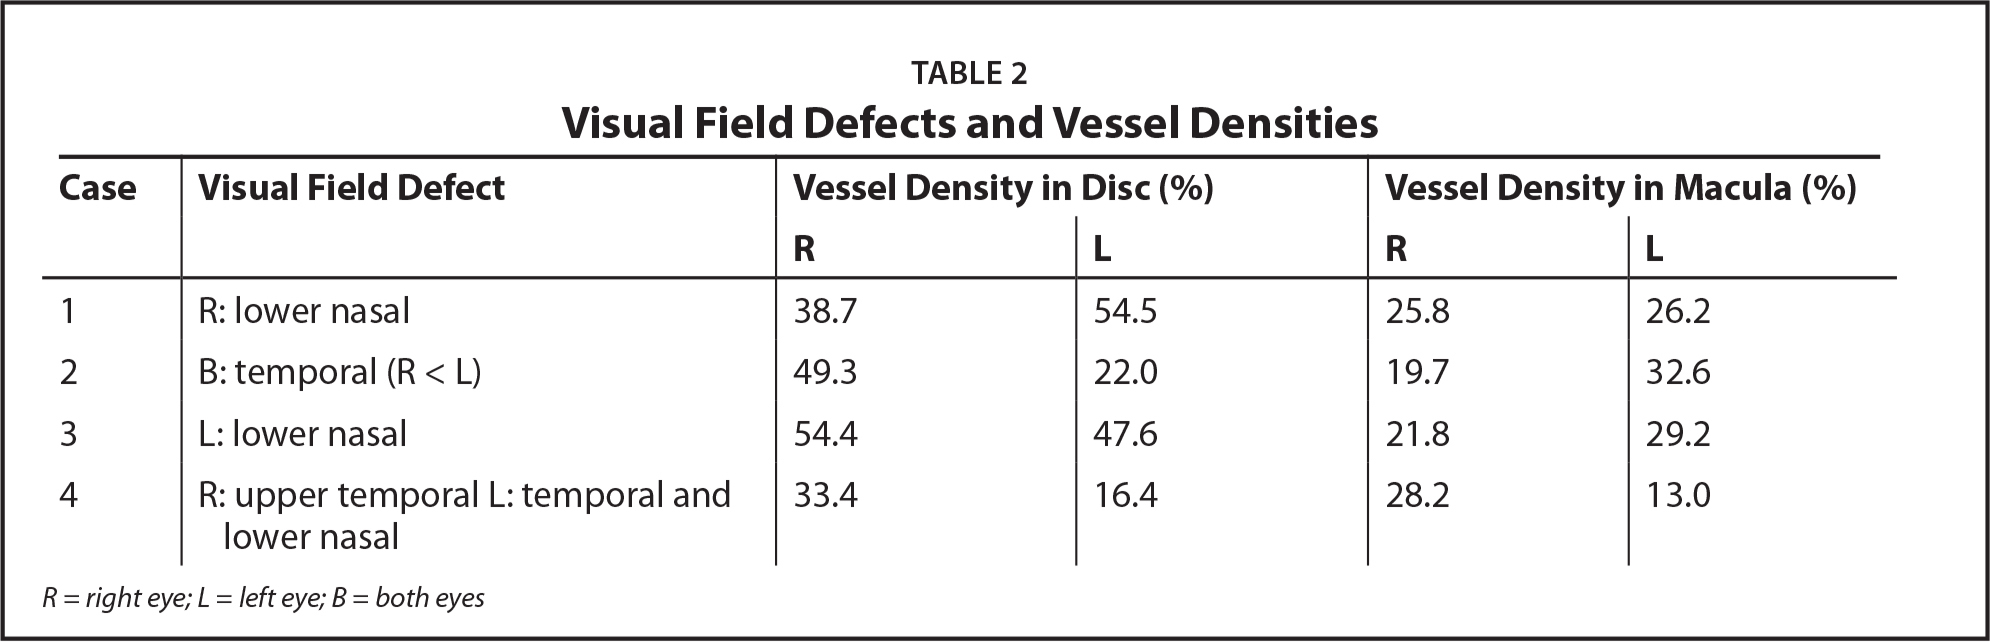 Visual Field Defects and Vessel Densities